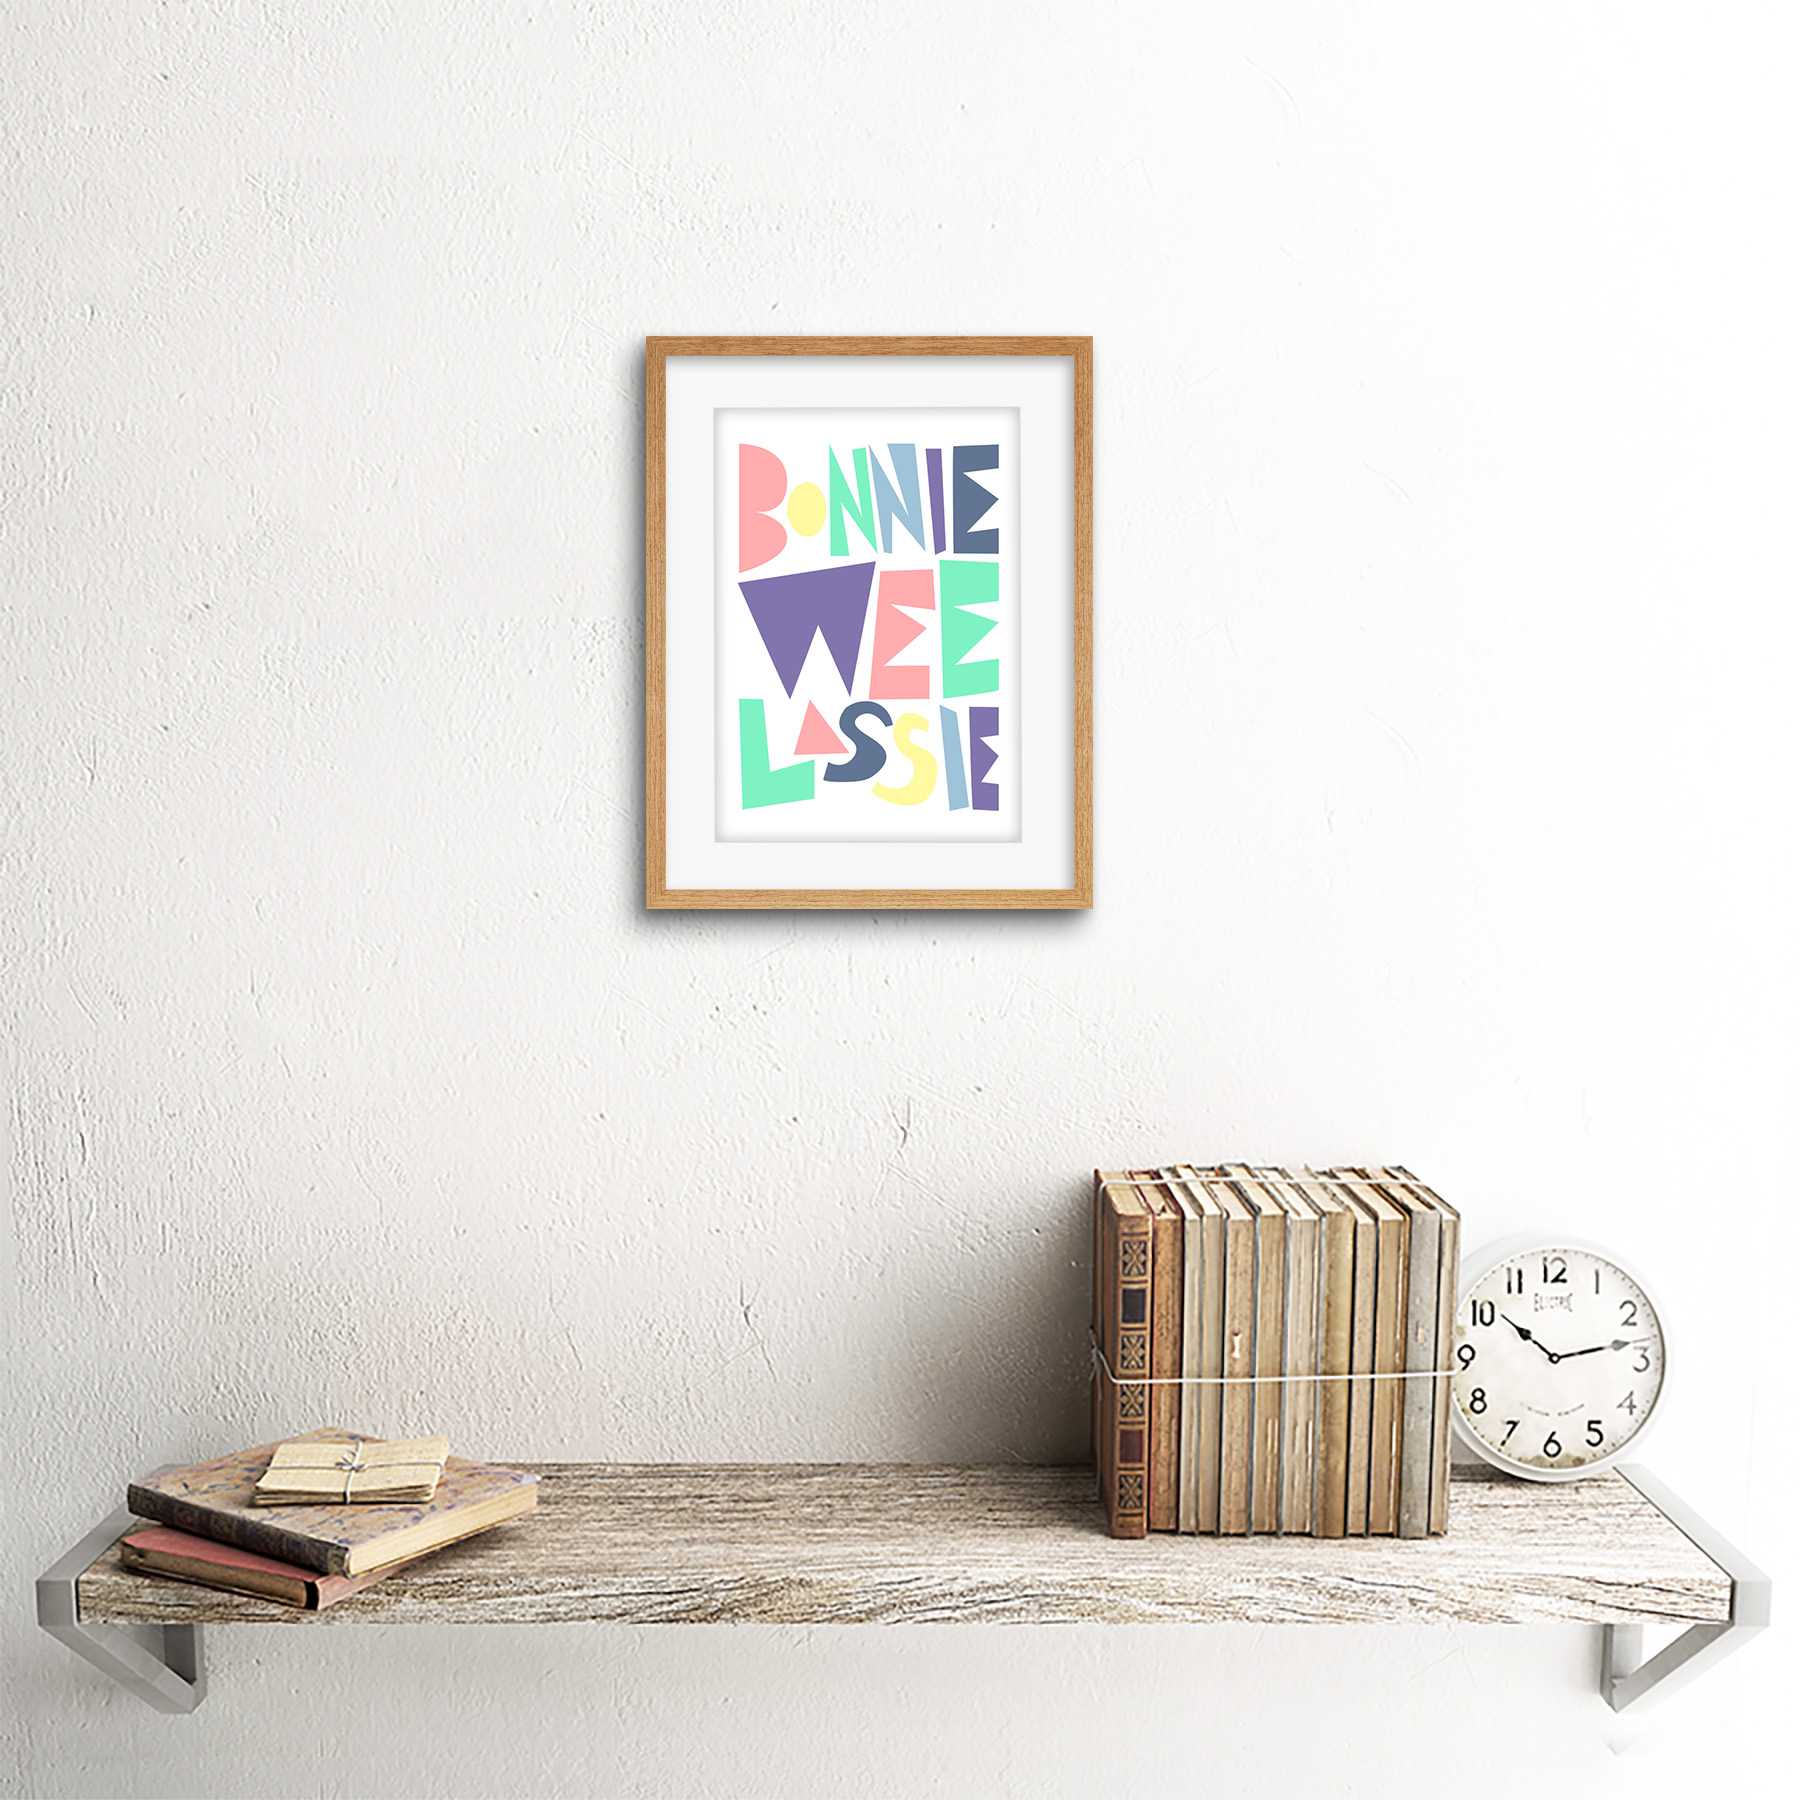 thumbnail 11 - Bonnie Wee LASSIE New Baby Girl Scottish Colourful Framed Wall Art Print